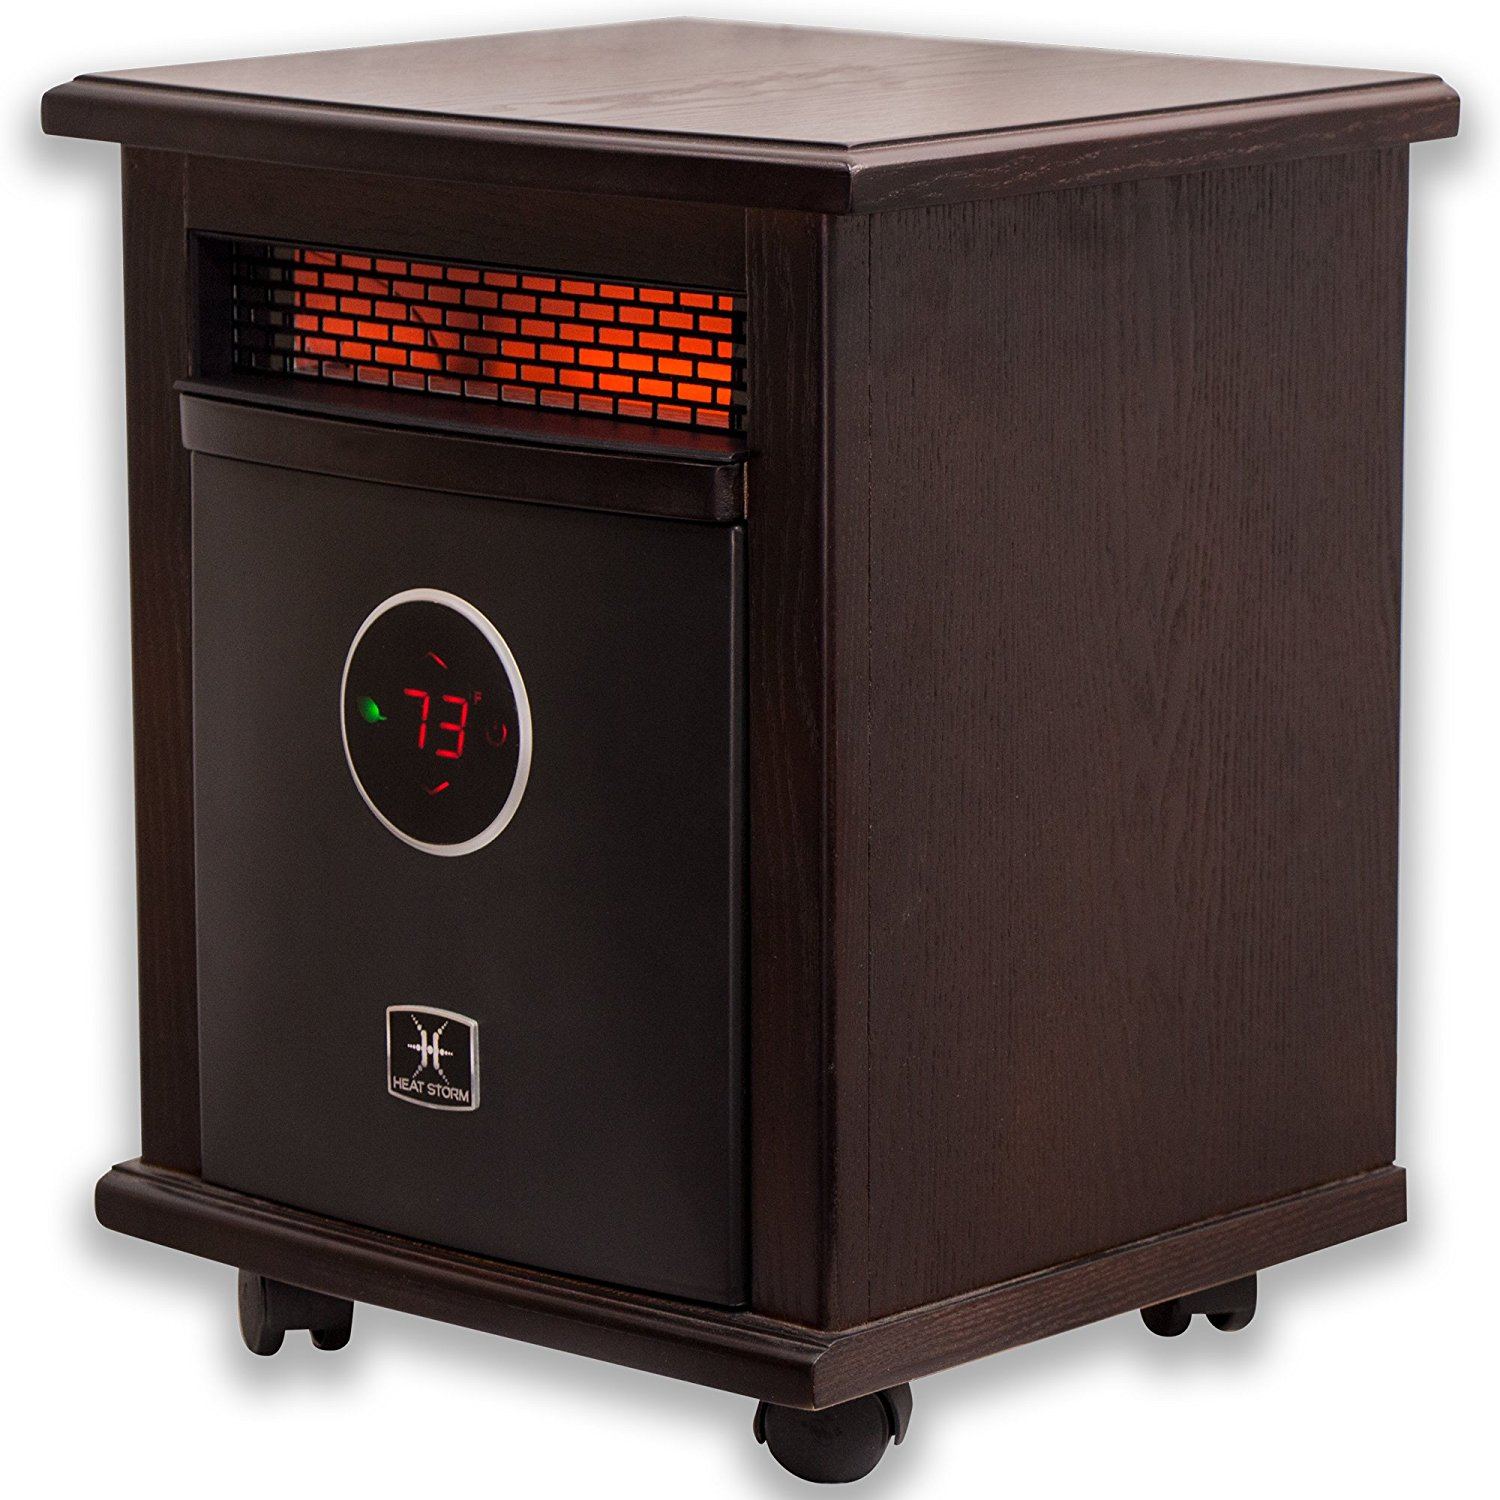 Heat Storm Logan Deluxe Portable Space Heater